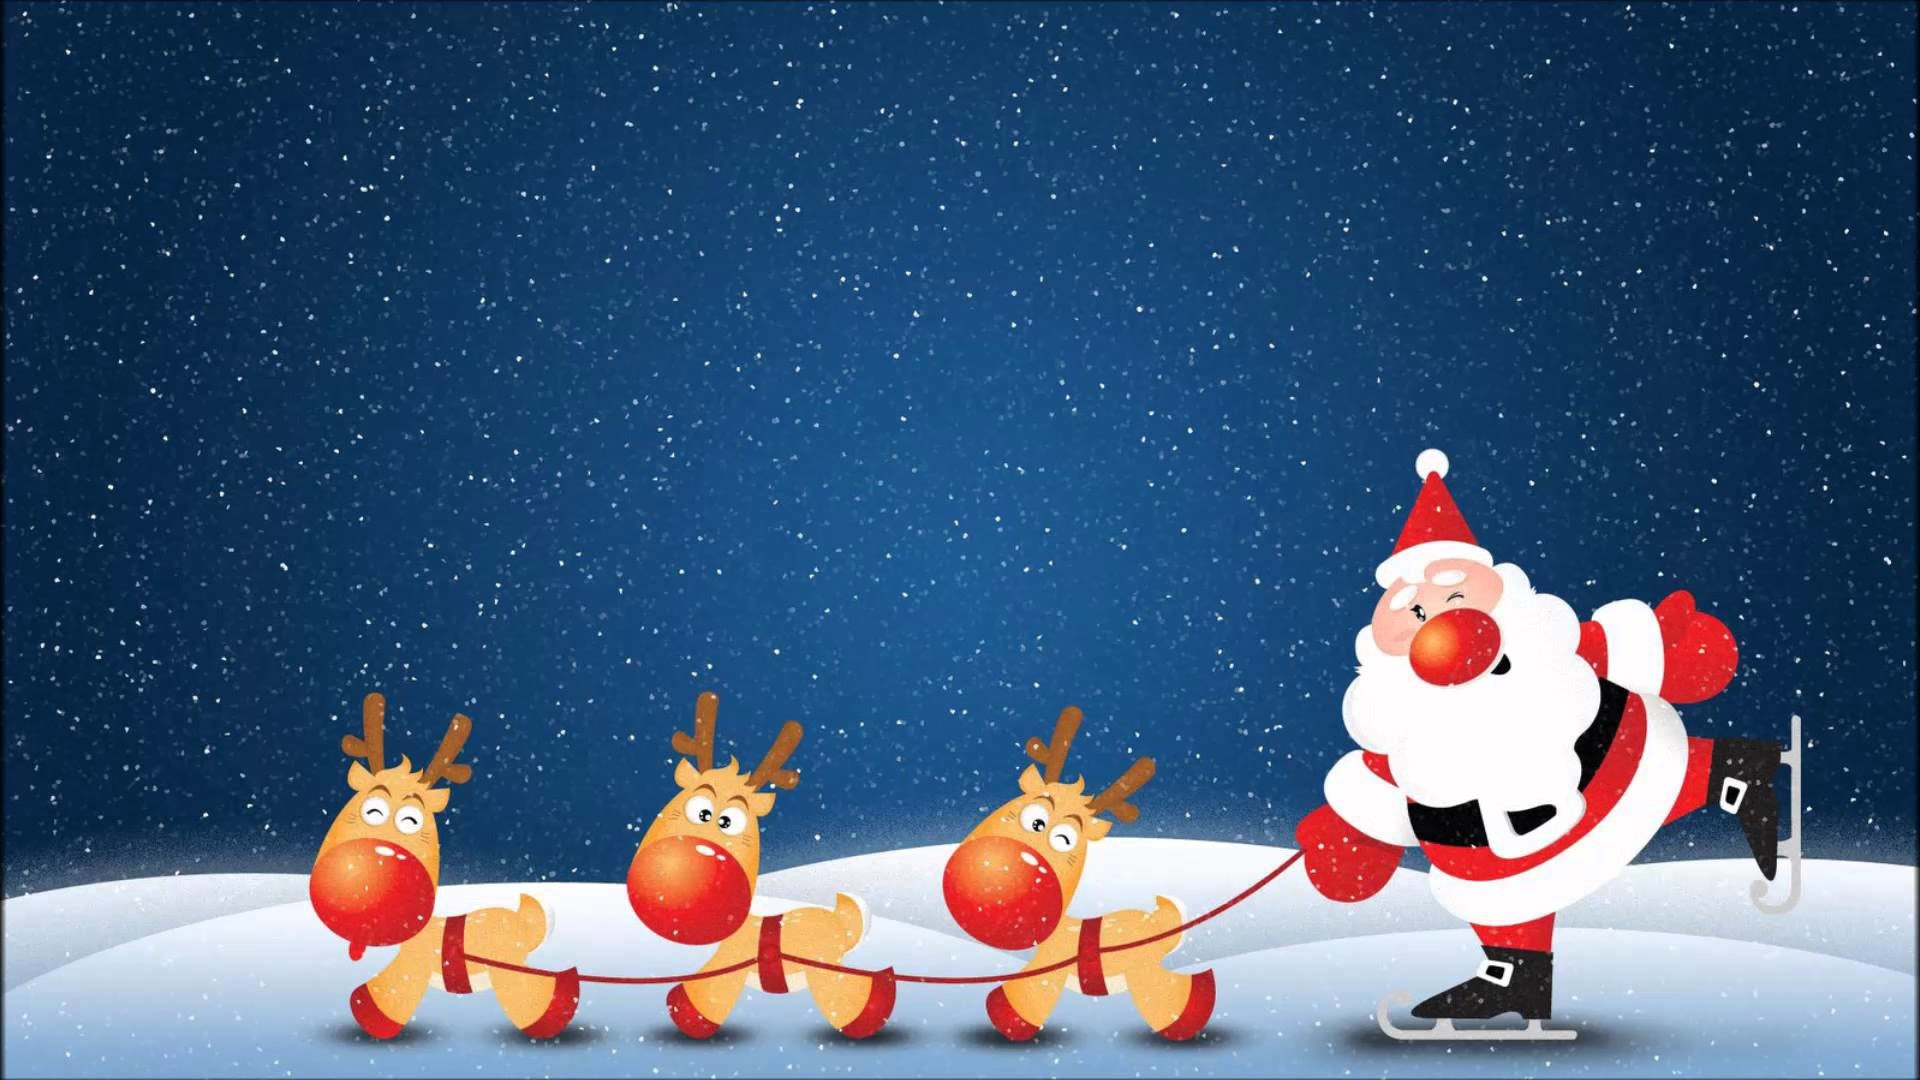 rudolph backgrounds 39 images